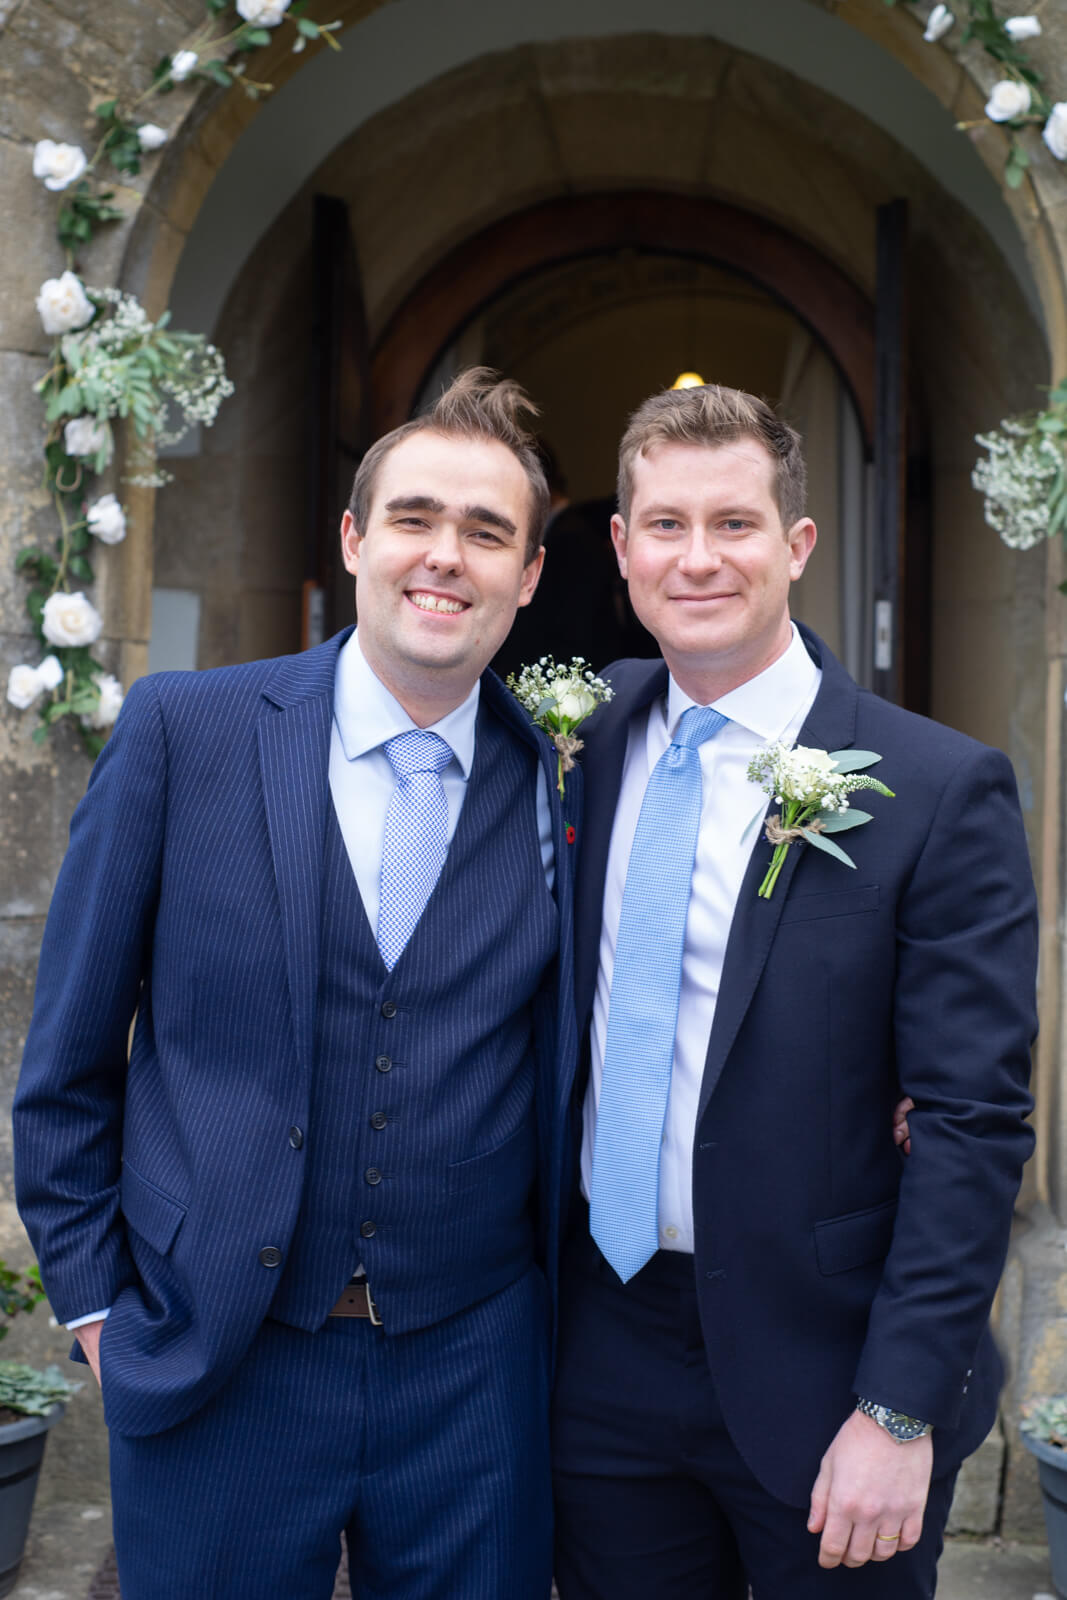 Groom and his best man standing together outside the chapel